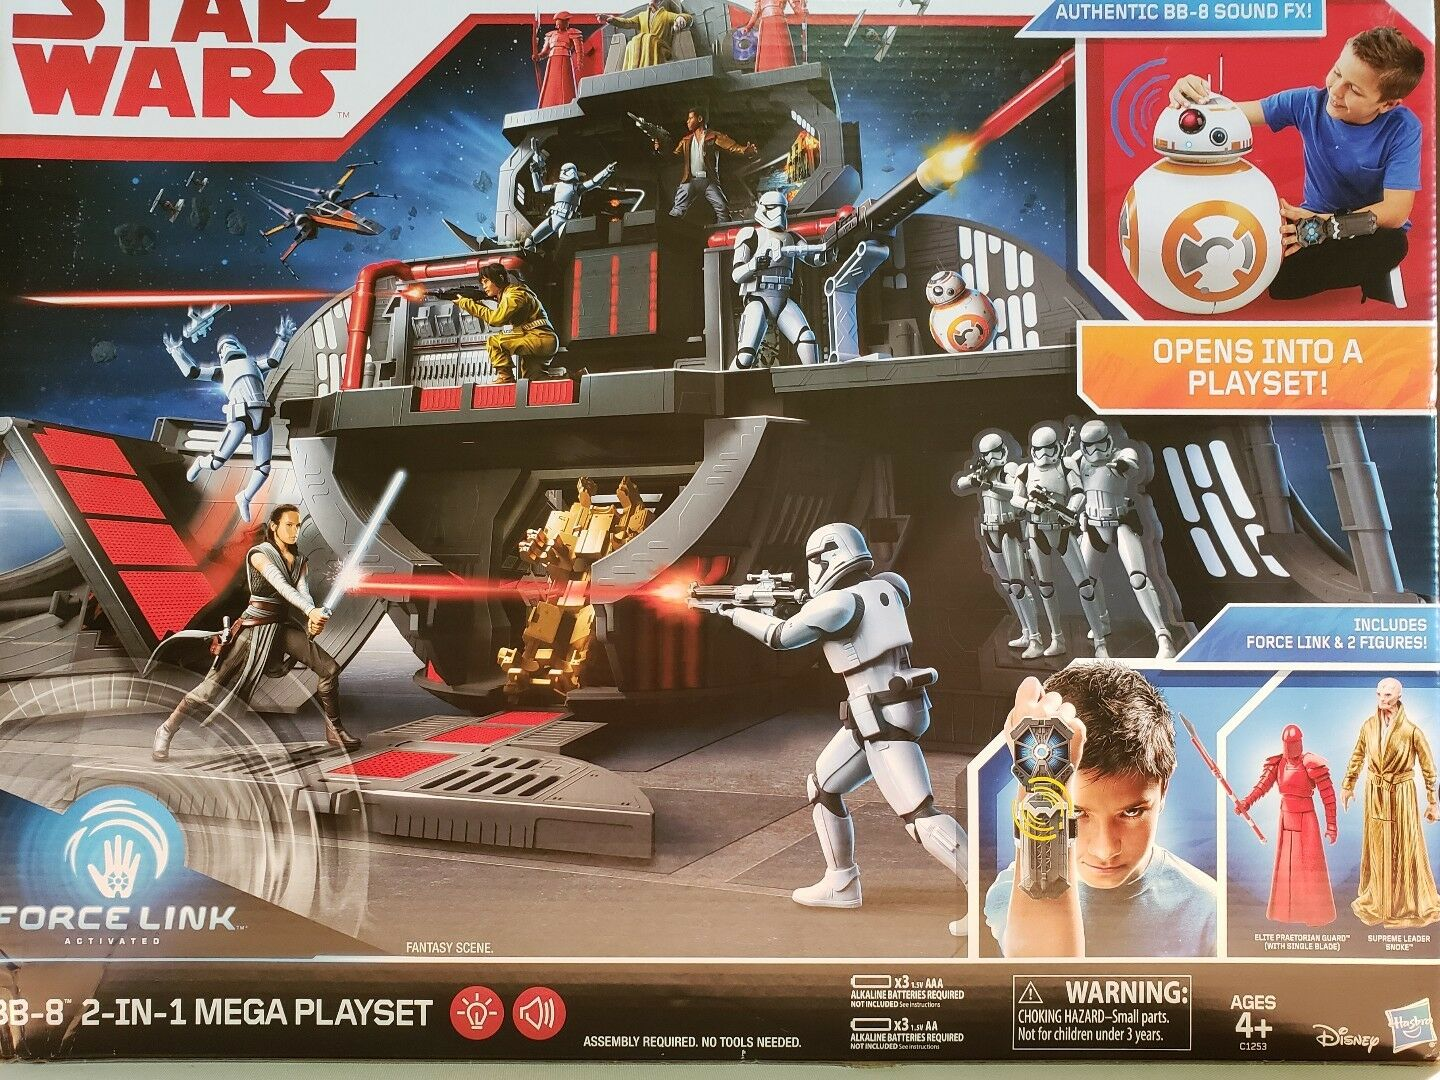 NEW Star Wars BB-8 2 in 1 Mega Playset Playset Playset w Force Link & 2 Figures Snoke ELITE 27fc7e